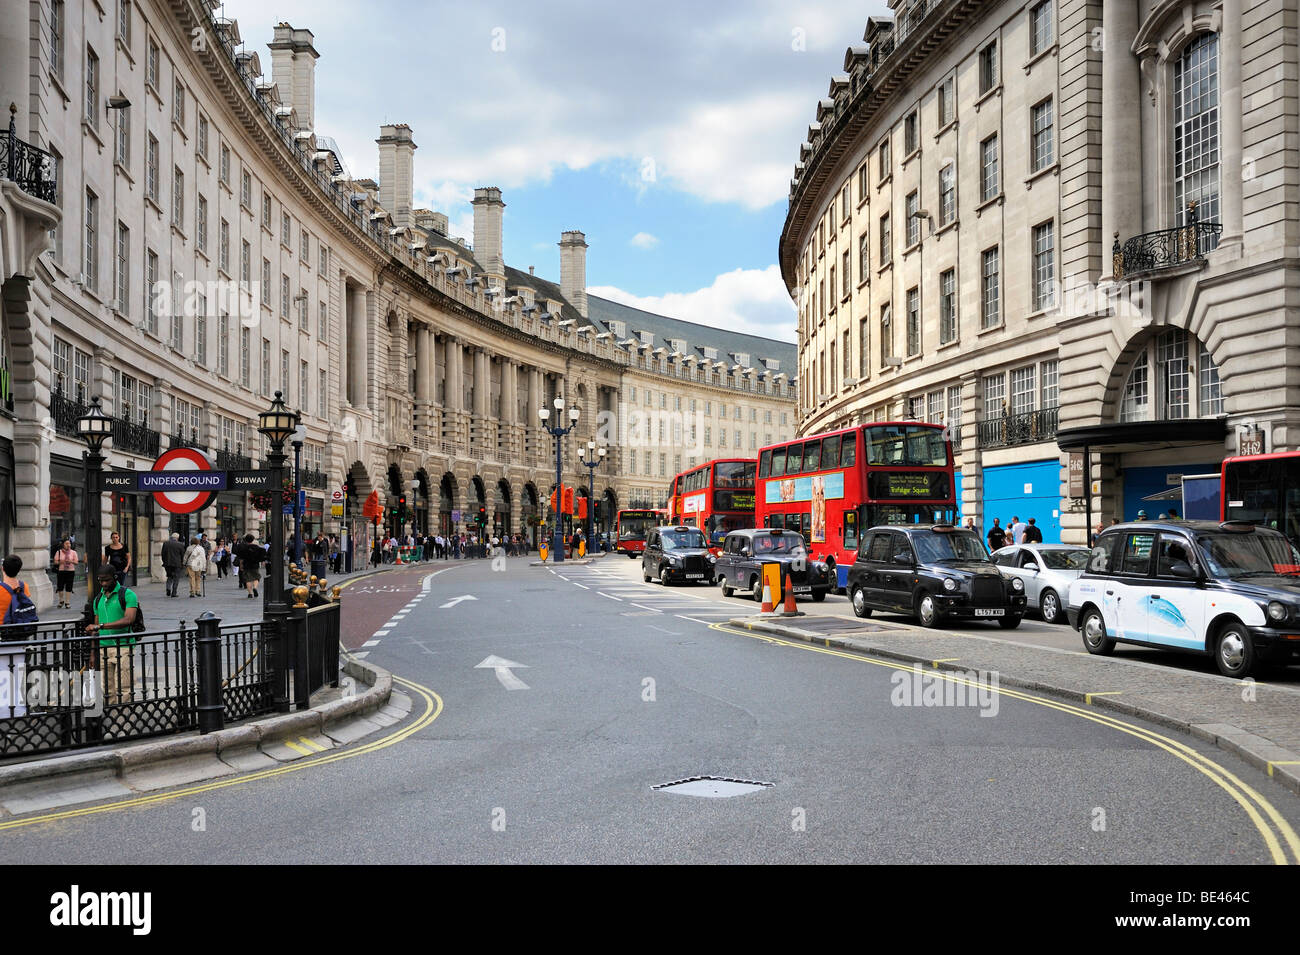 View from Piccadilly Circus into the curving Regent Street, London, England, United Kingdom, Europe - Stock Image